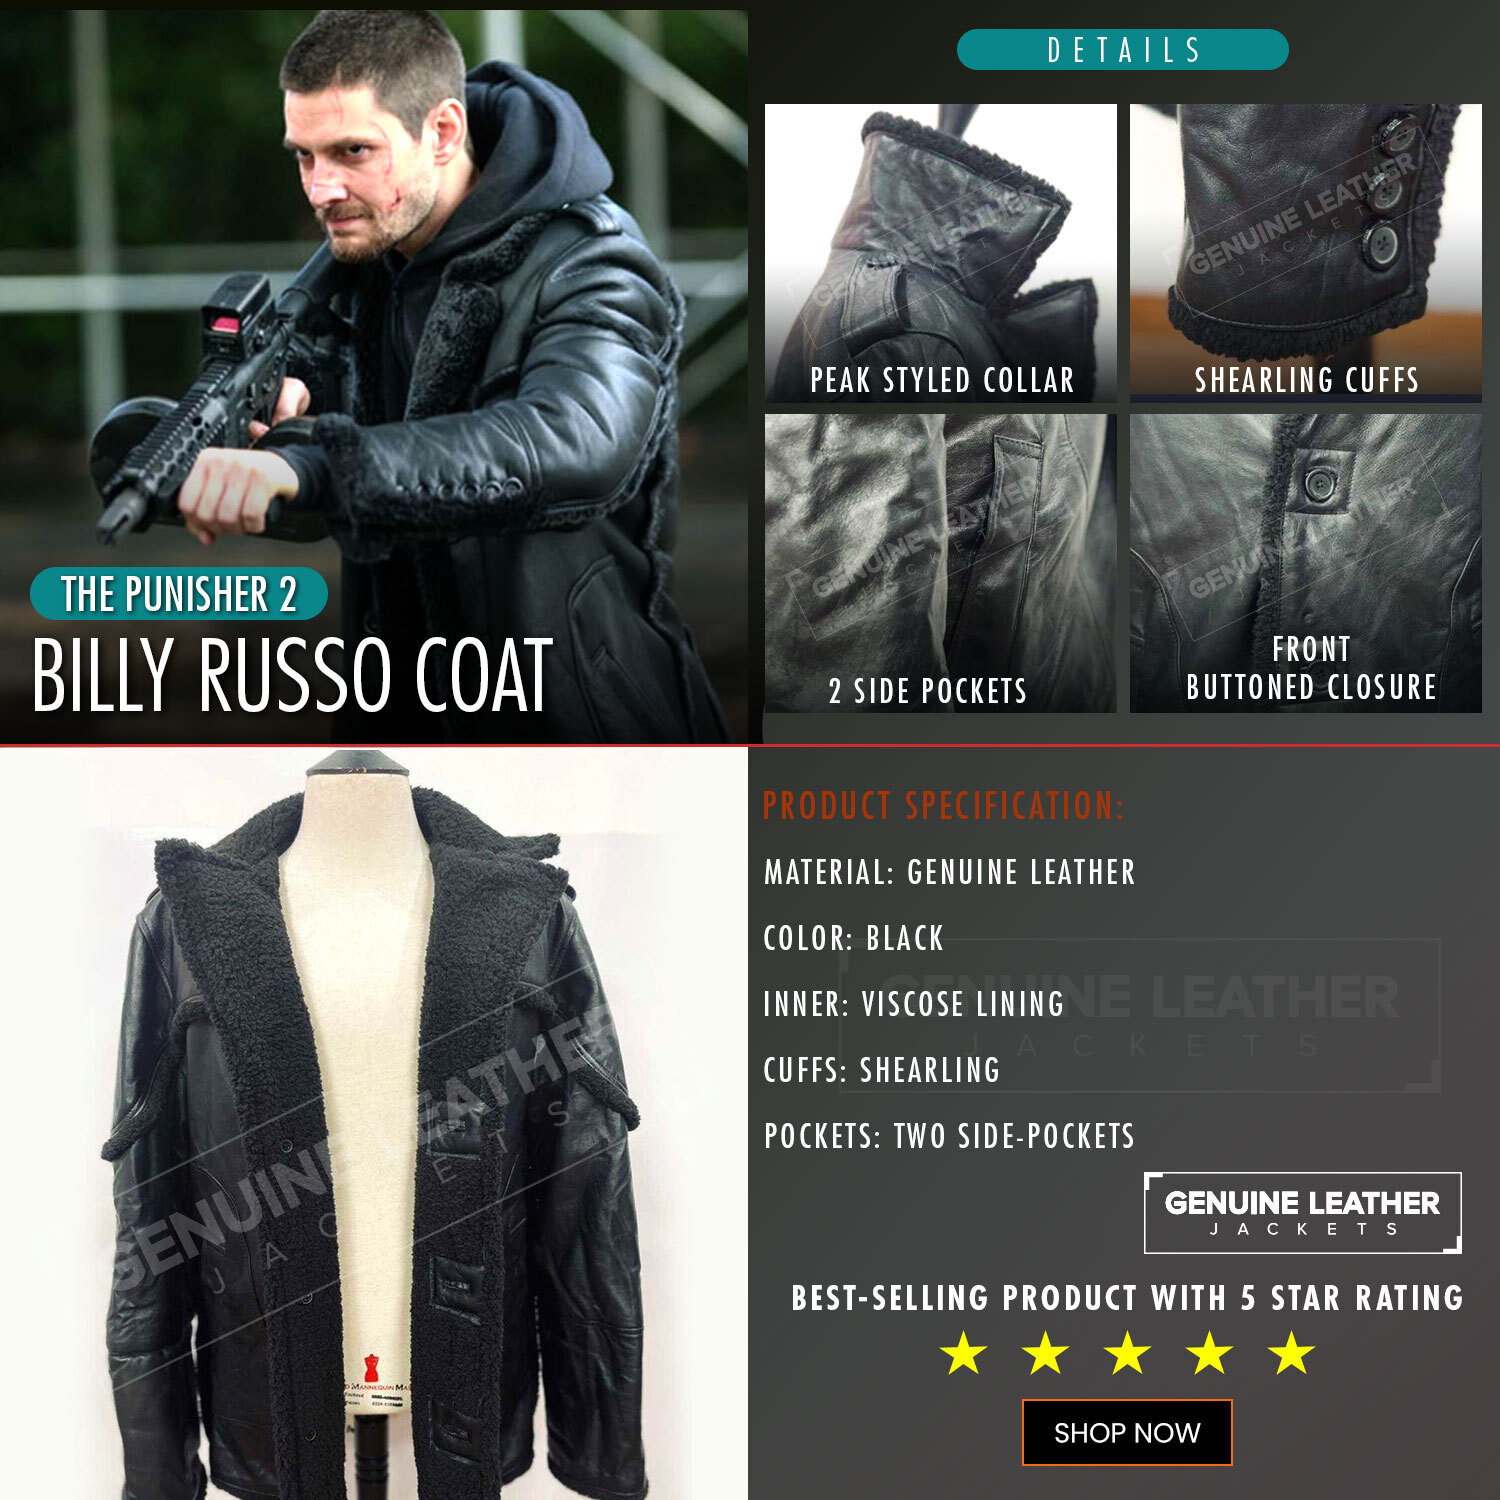 The Punisher 2 Billy Russo Black Coat